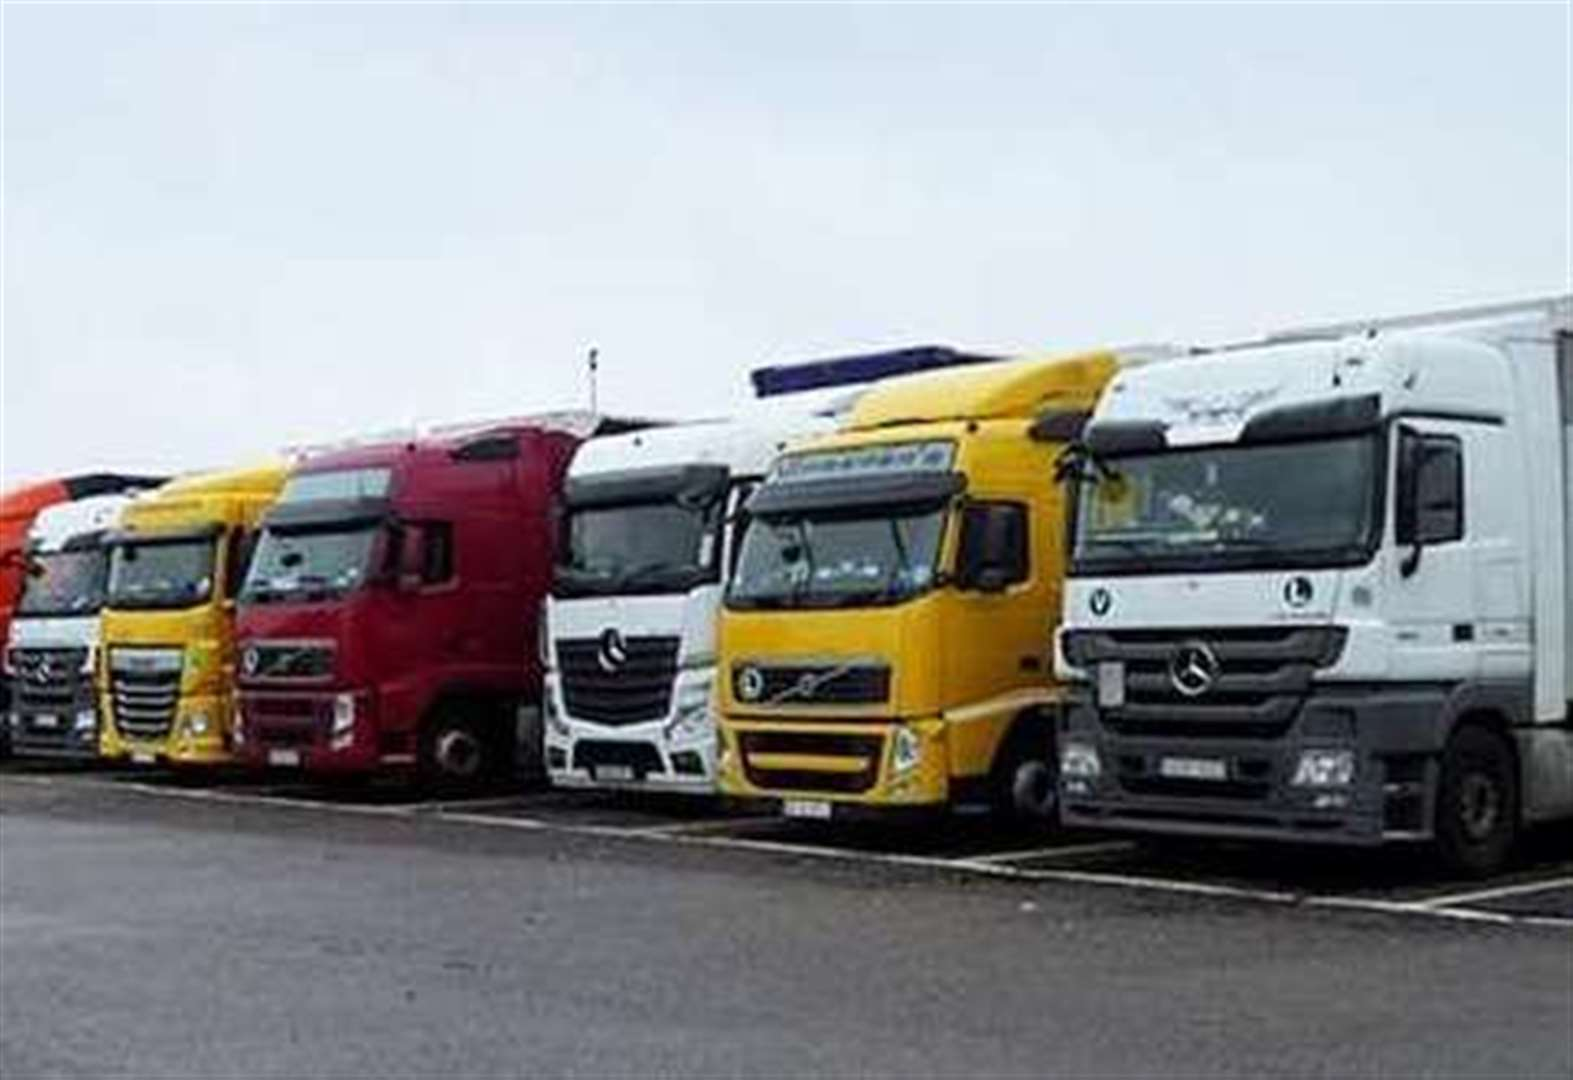 'Plans for lorry parks in limbo'